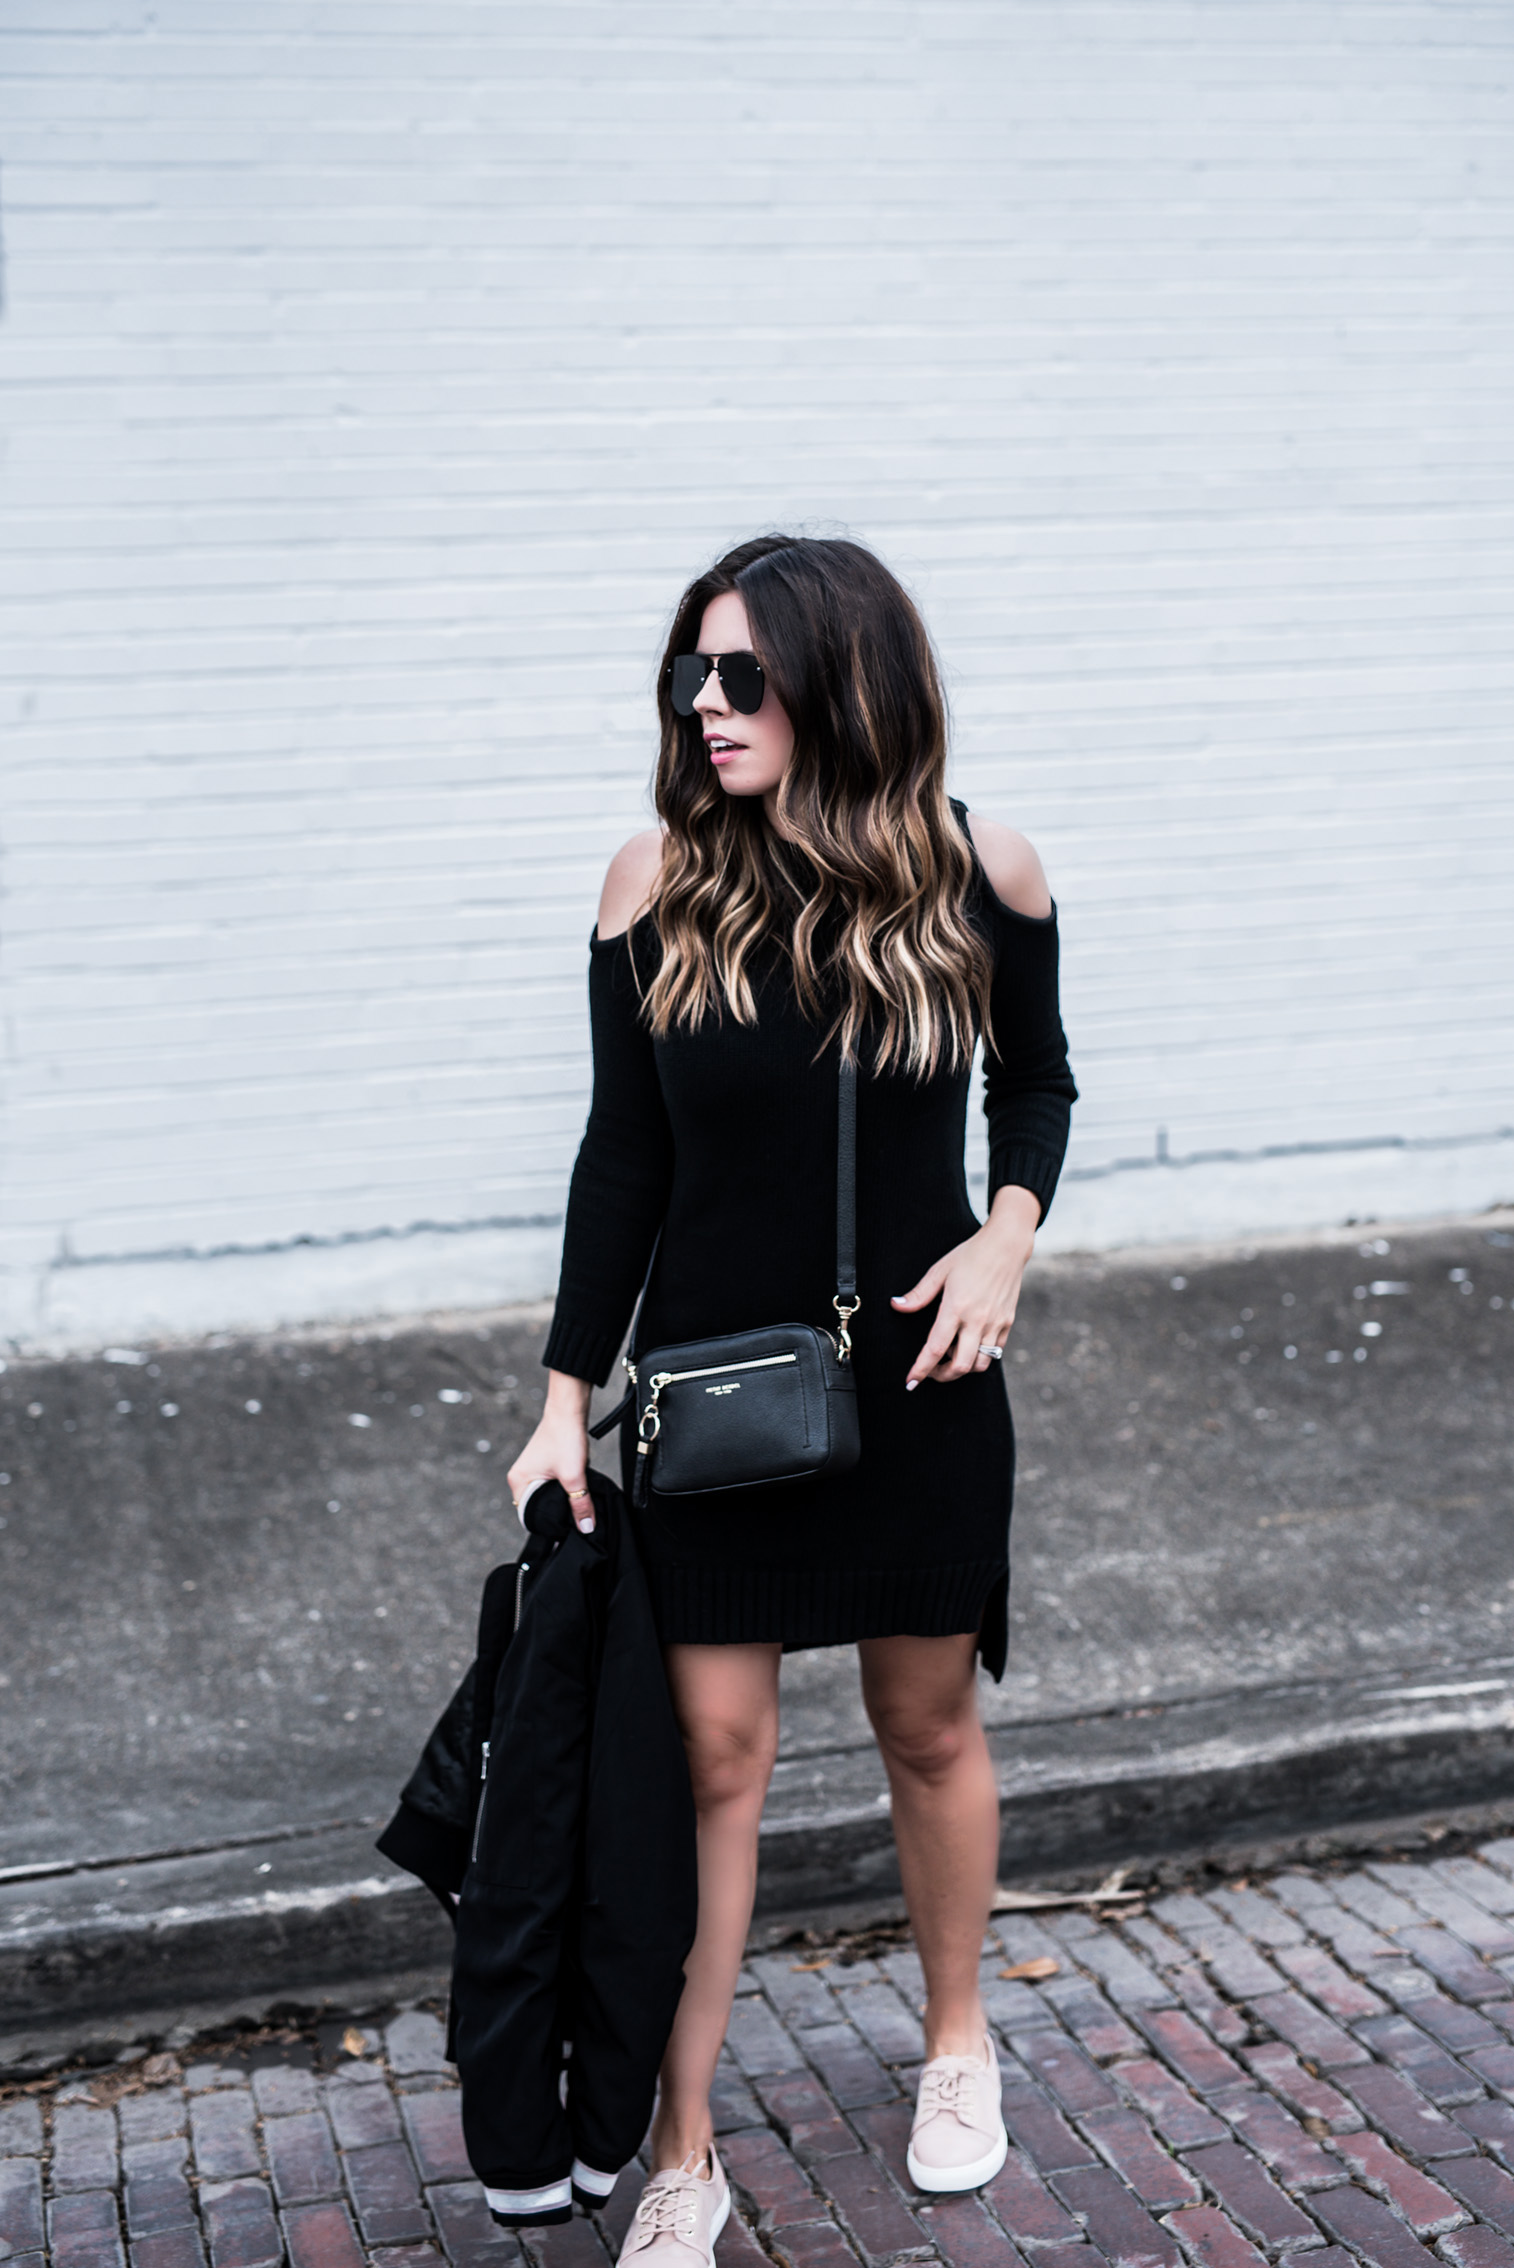 Houston fashion blogger wearing a cold shoulder sweater dress by Revolve, and a neutral sneaker by Elaine Turner, click to shop the look | Outfit ideas for spring, bomber jacket, blogger style, fashionista, best casual outfits